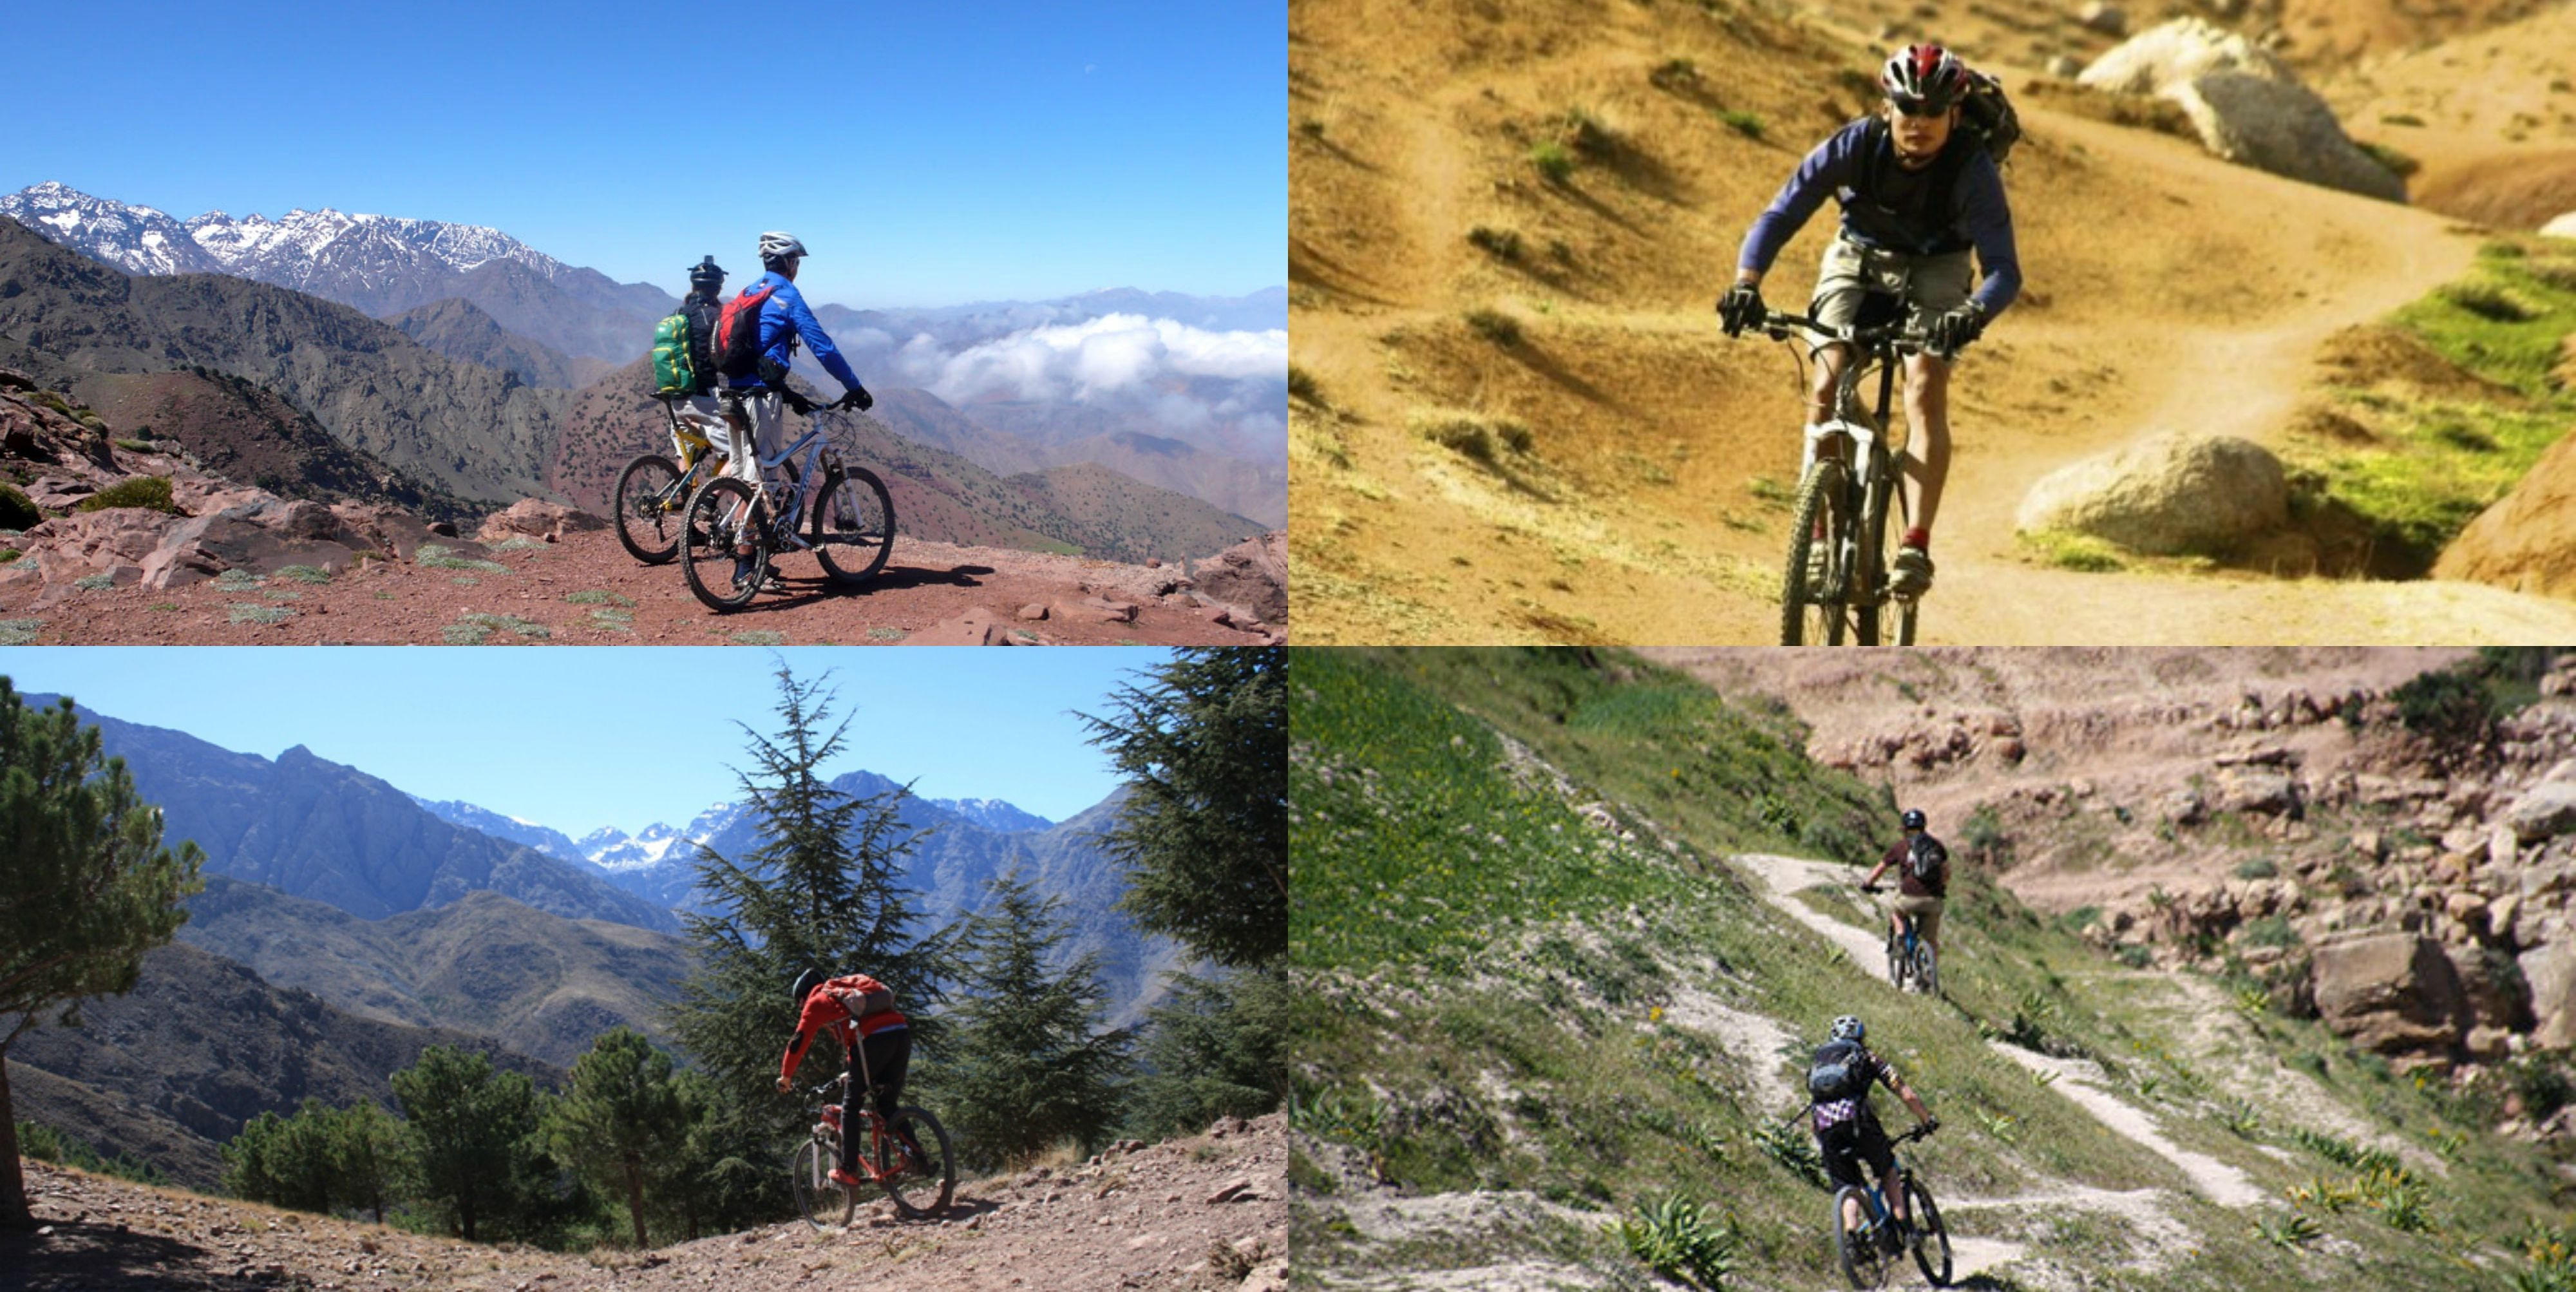 All Inclusive Fully Supported Single Track Mountain Bike Holidays Based In The High Atlasmountains Single Track Mountain Biking Mountain Biking Country Roads